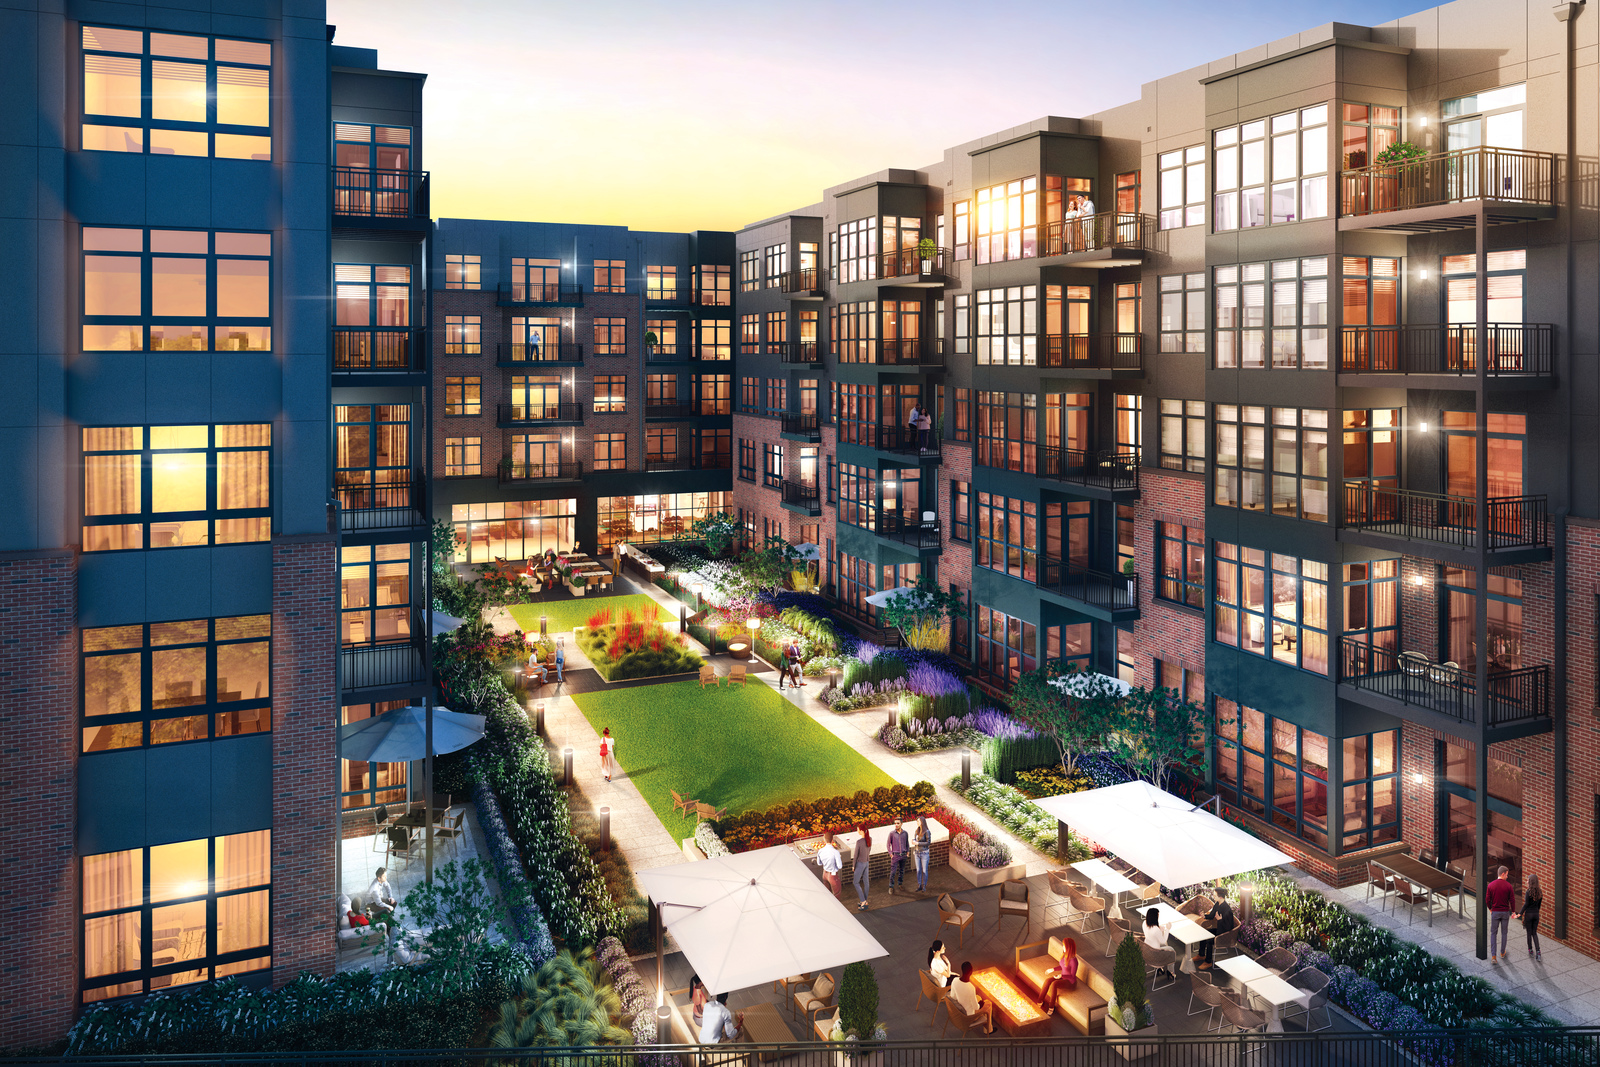 At The Bexley, residents will enjoy individual balconies or patios as well as the building's private resident courtyard for entertaining, grilling, or relaxing.